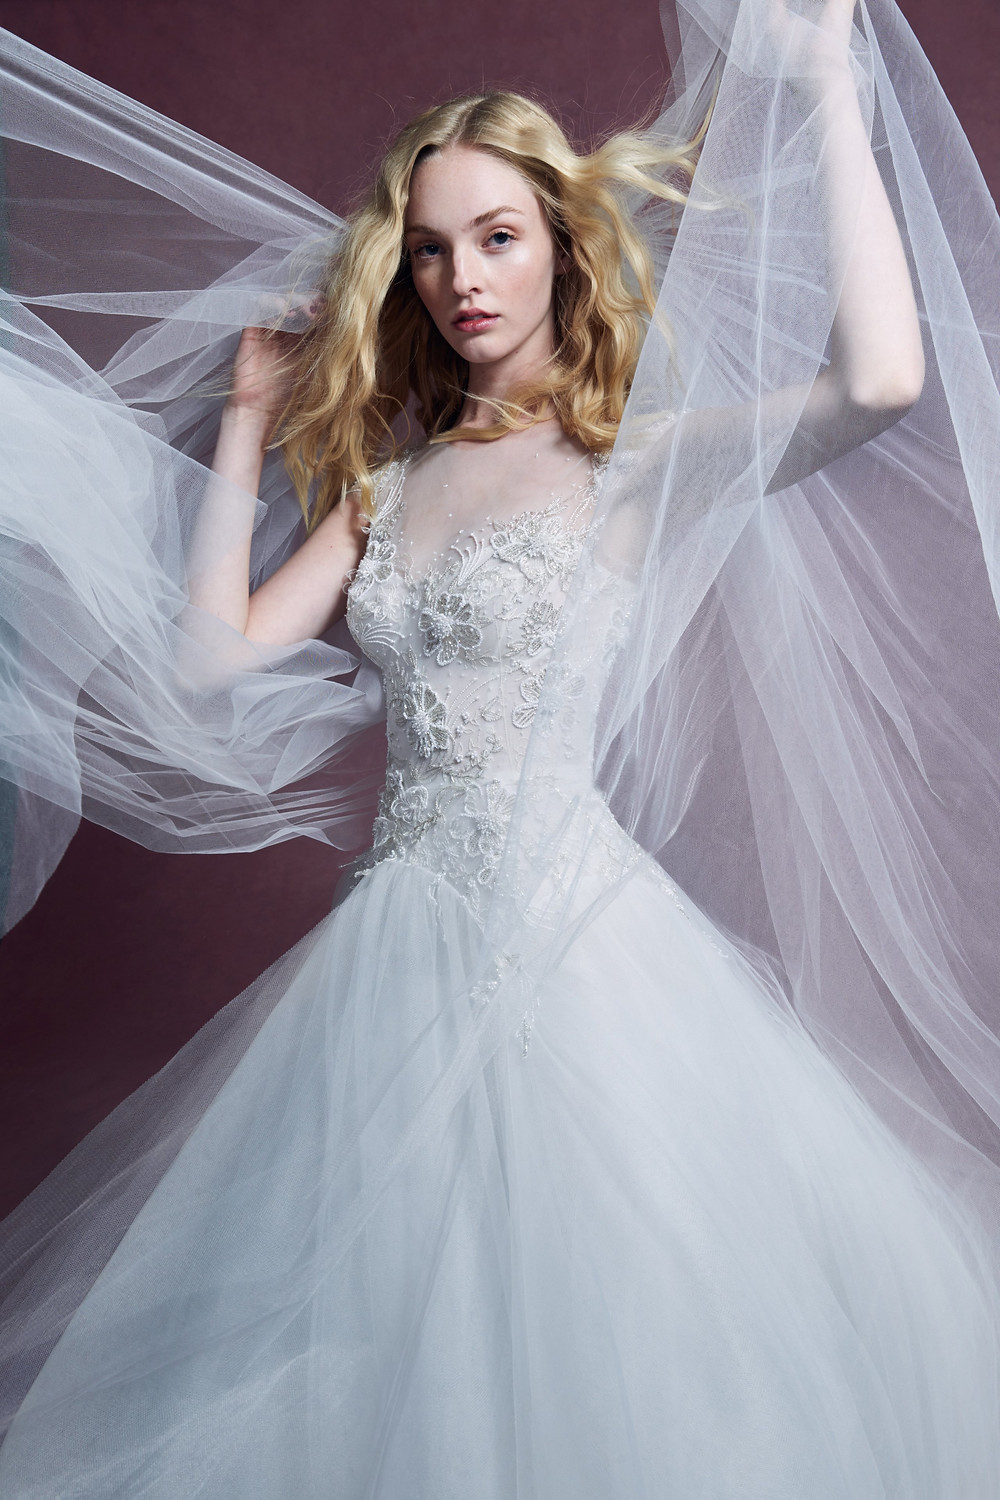 A Marchesa 2020 ball gown wedding dress, with a tulle skirt, delicate lace bodice and an illusion neckline with beading